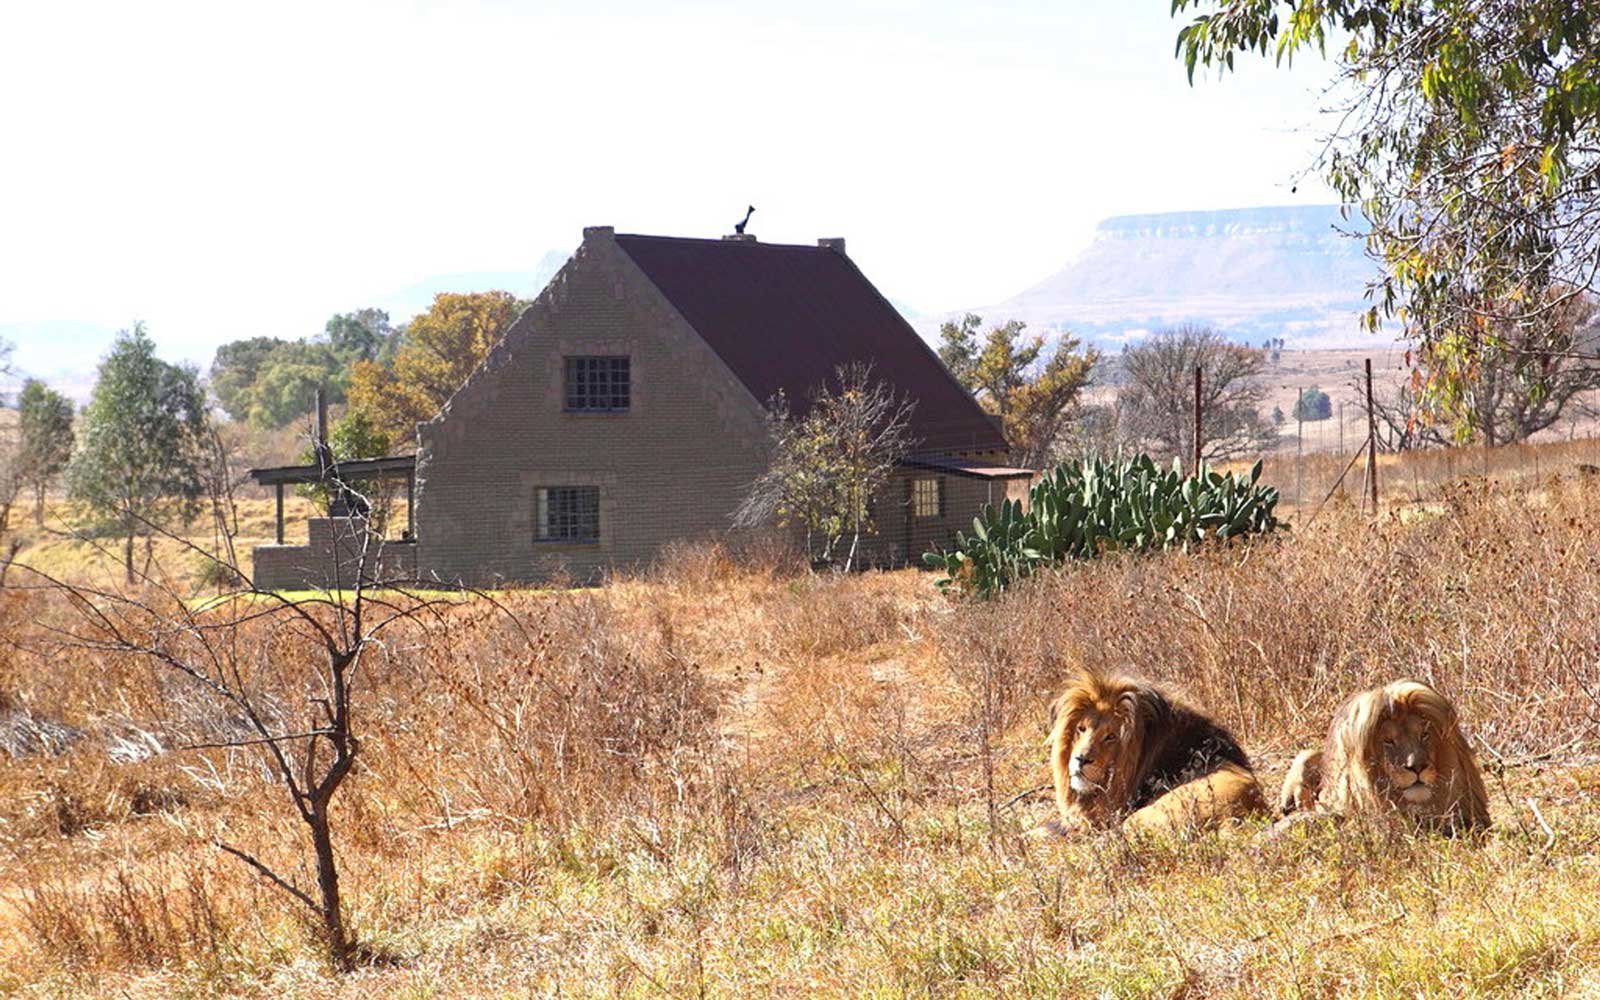 Lion House at GG Conservation